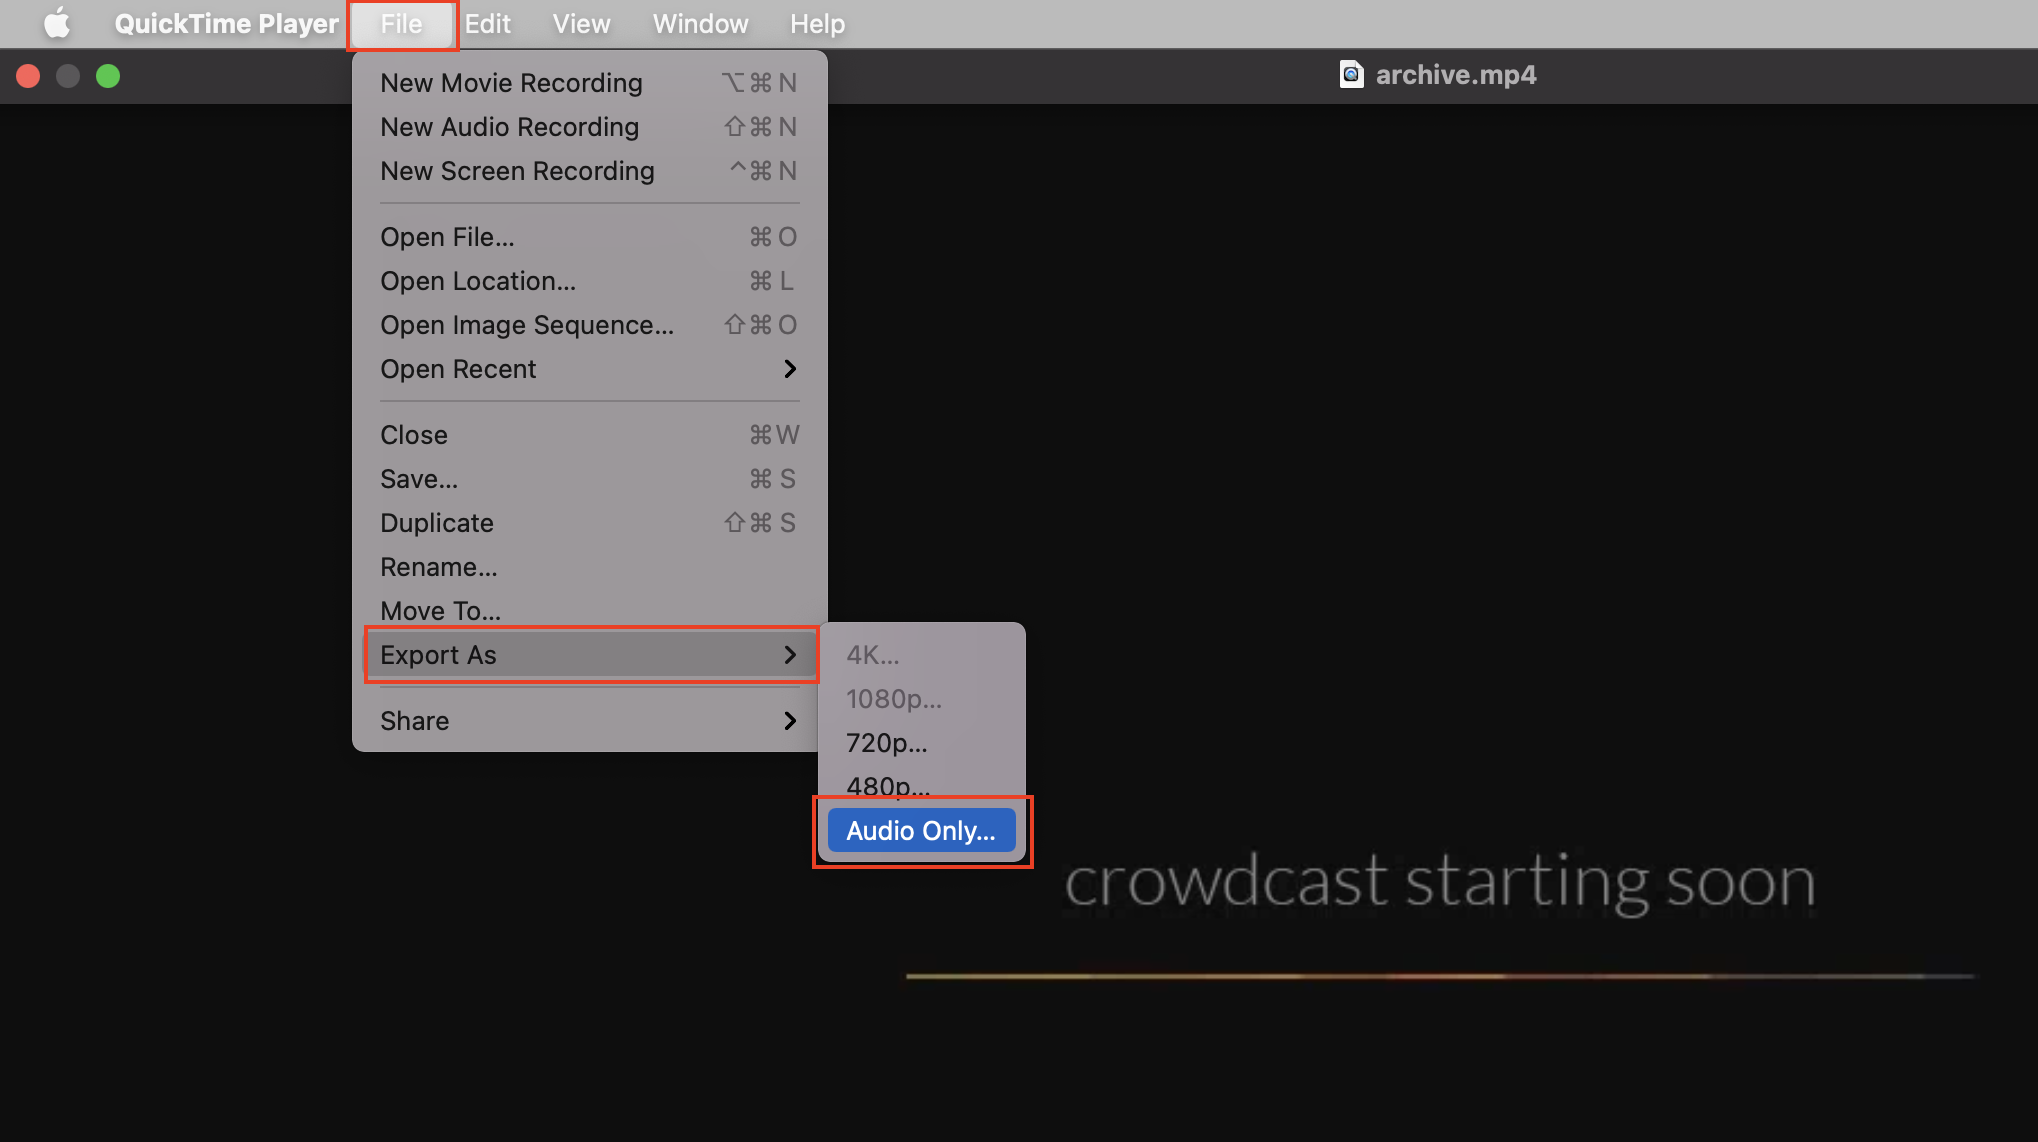 Screenshot of where you can export audio-only from within QuickTime